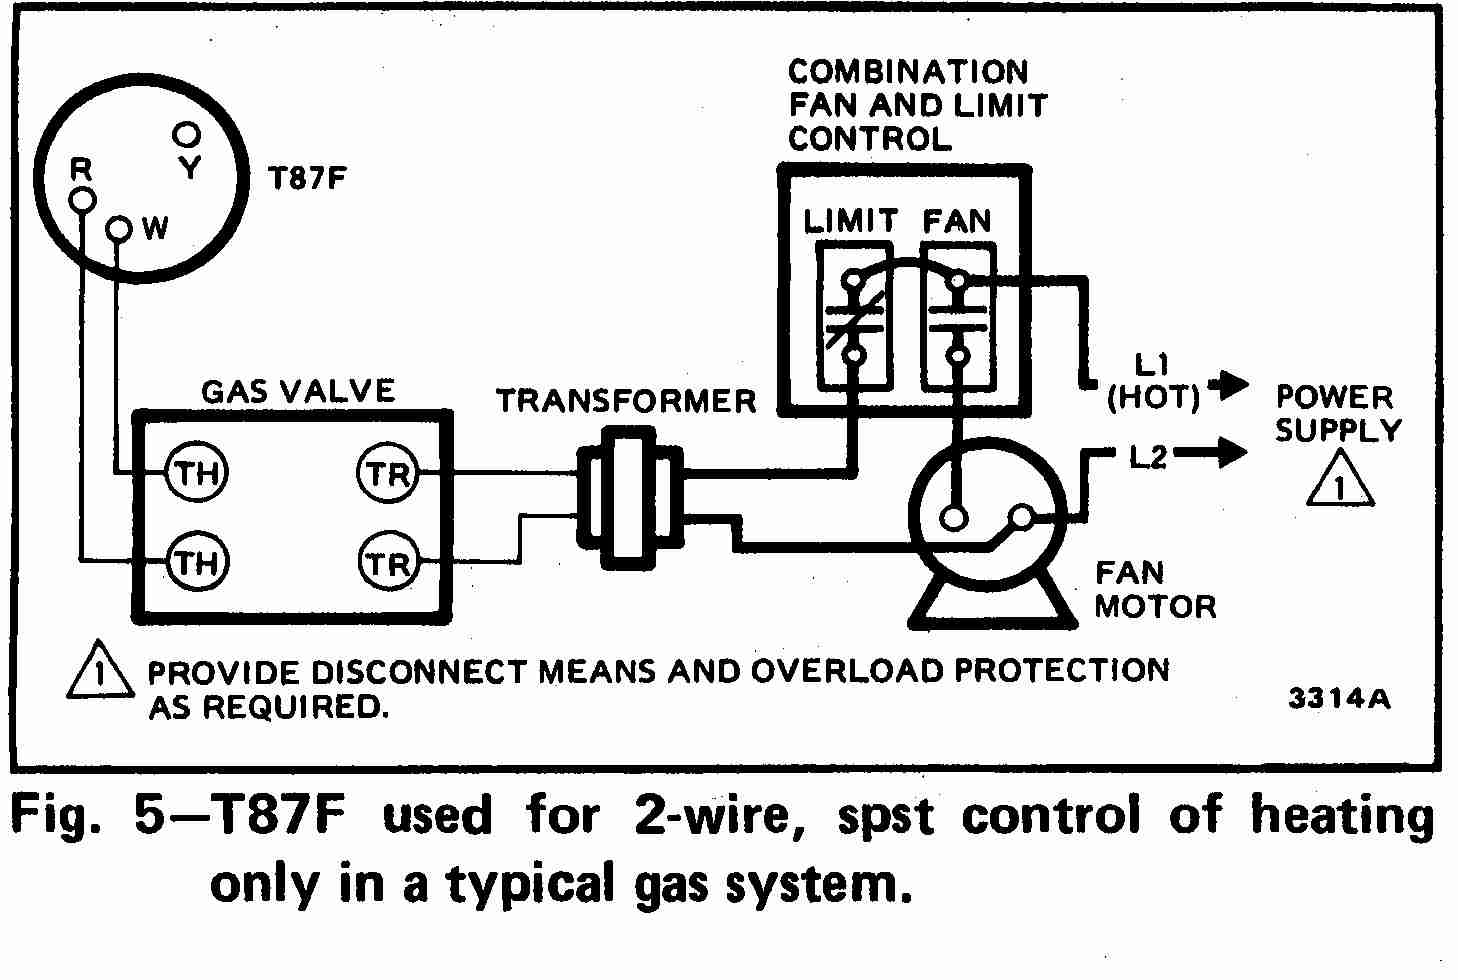 TT_T87F_0002_2Wg_DJF guide to wiring connections for room thermostats honeywell mercury thermostat wiring diagram at suagrazia.org